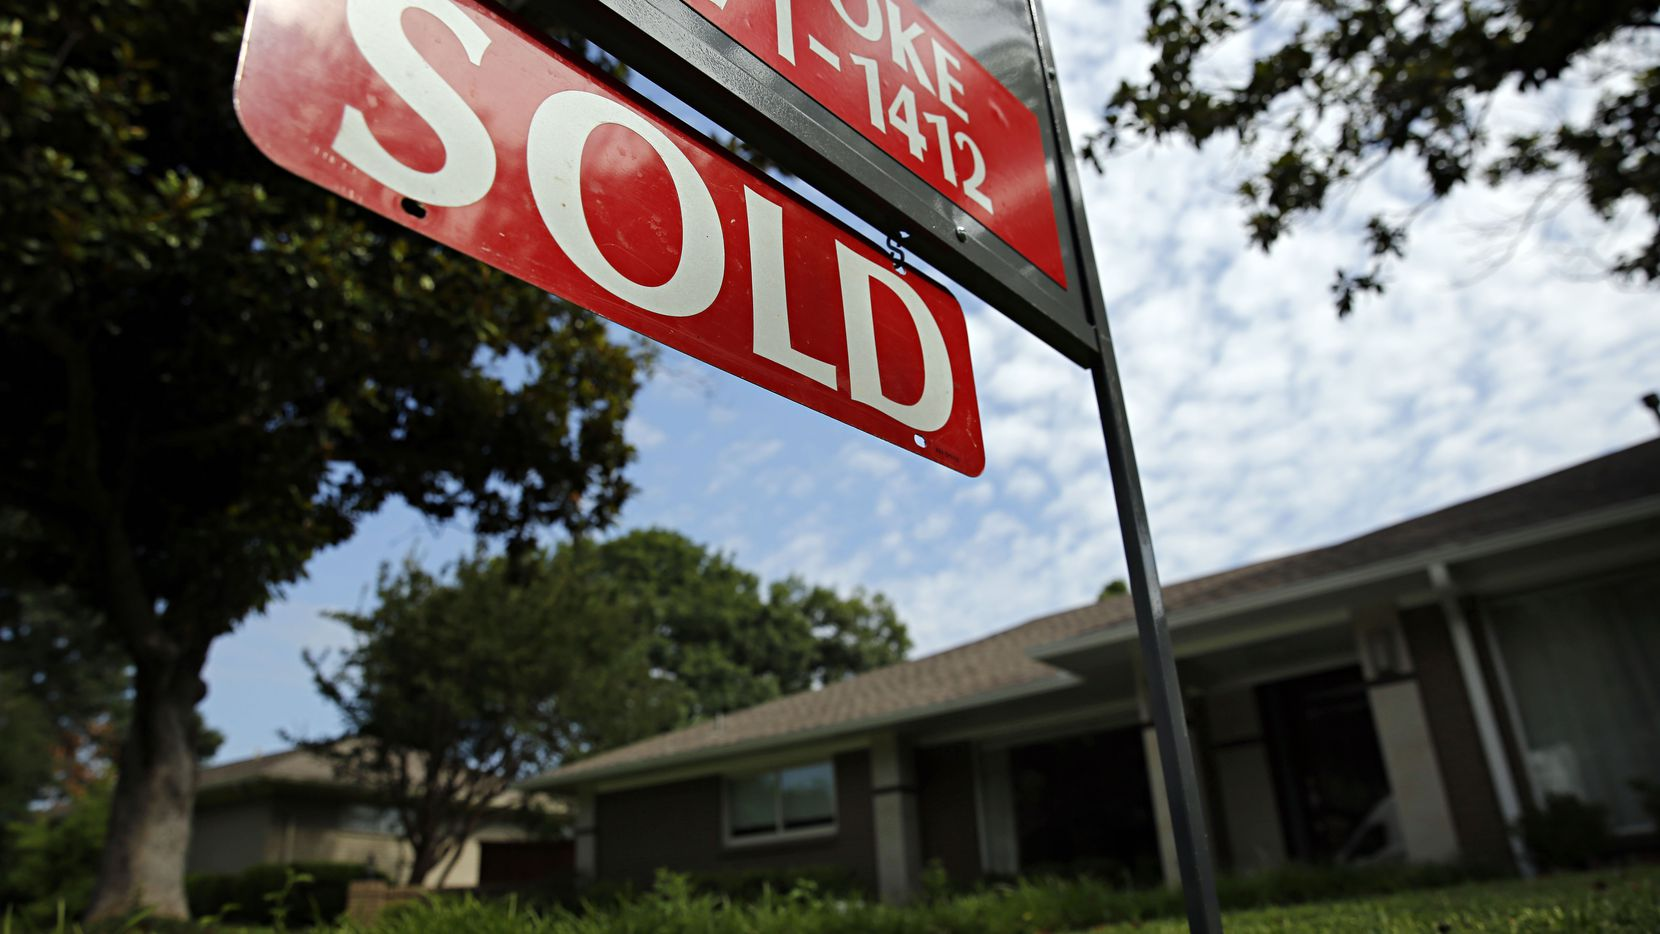 Grayson, Ellis and Collin counties wound up near the top of the list of least affordable U.S. home markets.